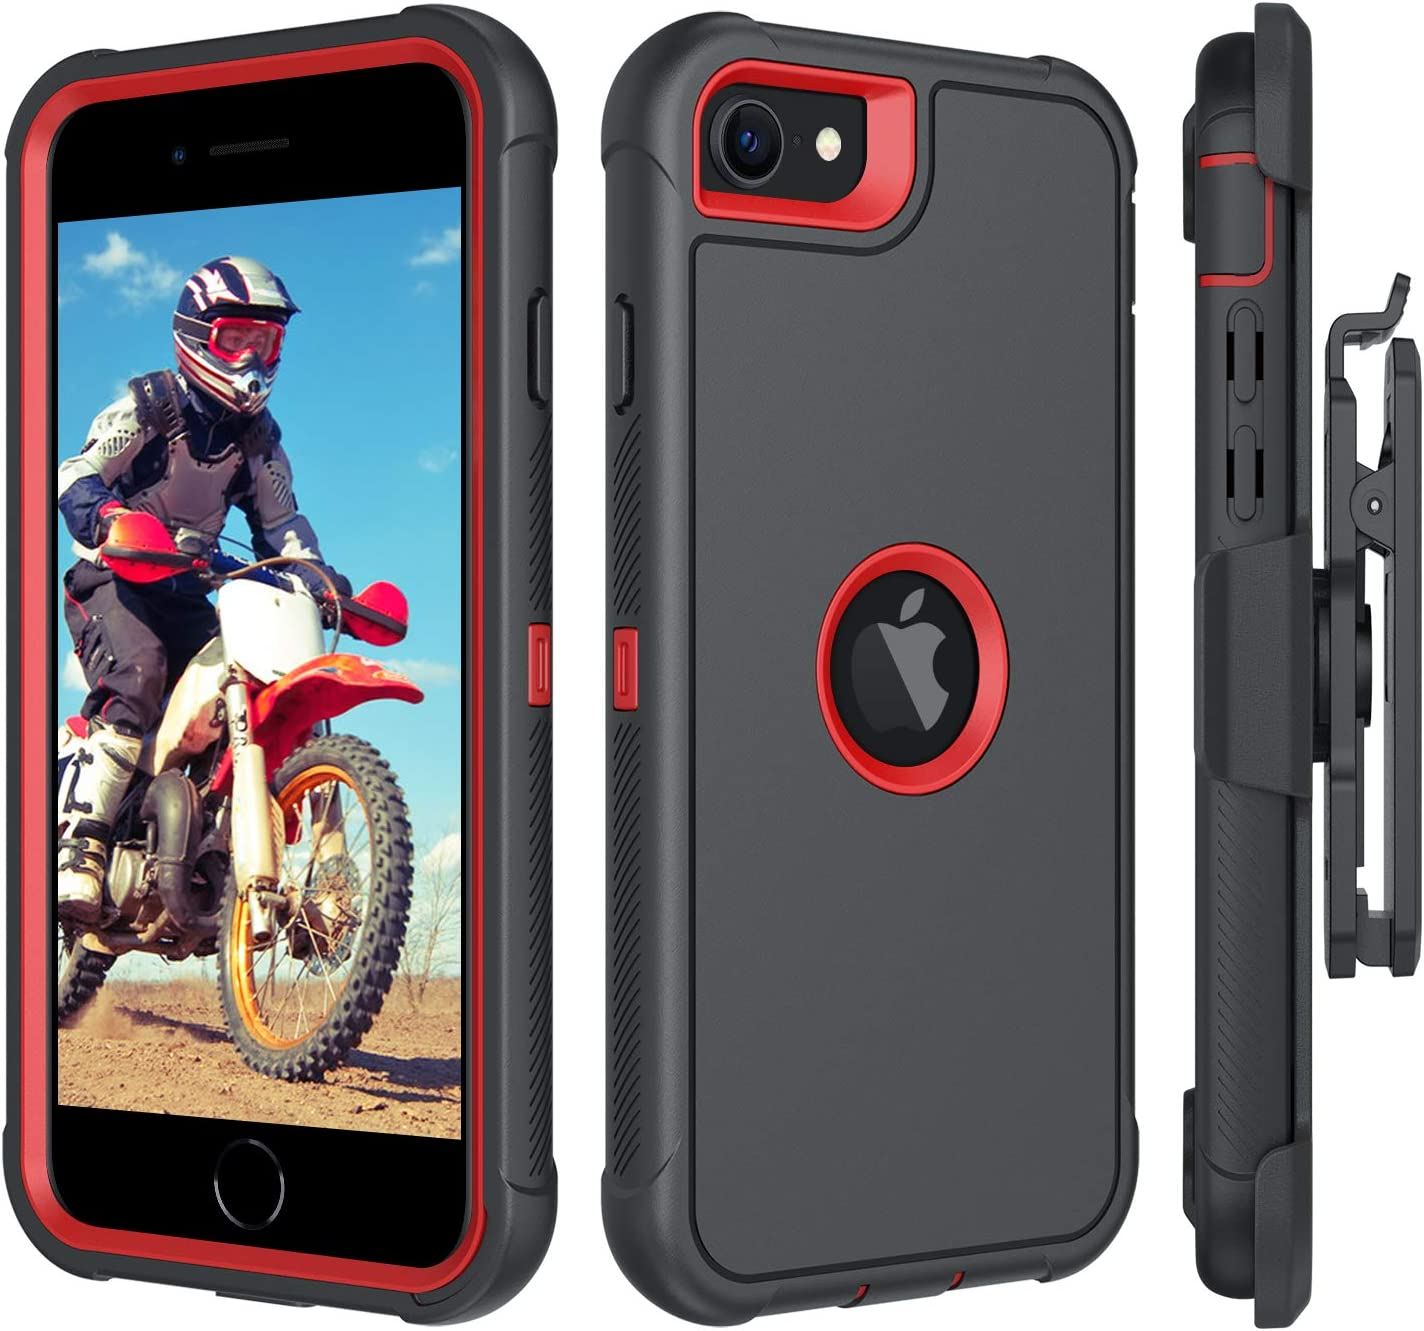 """BENTOBEN iPhone SE 2020 Case, Heavy Duty [3 Layers] Shockproof Full Body Rugged Hybrid Protective Case for Apple iPhone SE 2nd Generation 4.7"""" 2020 with Kickstand Belt Clip Holster Cover, Black&Red"""